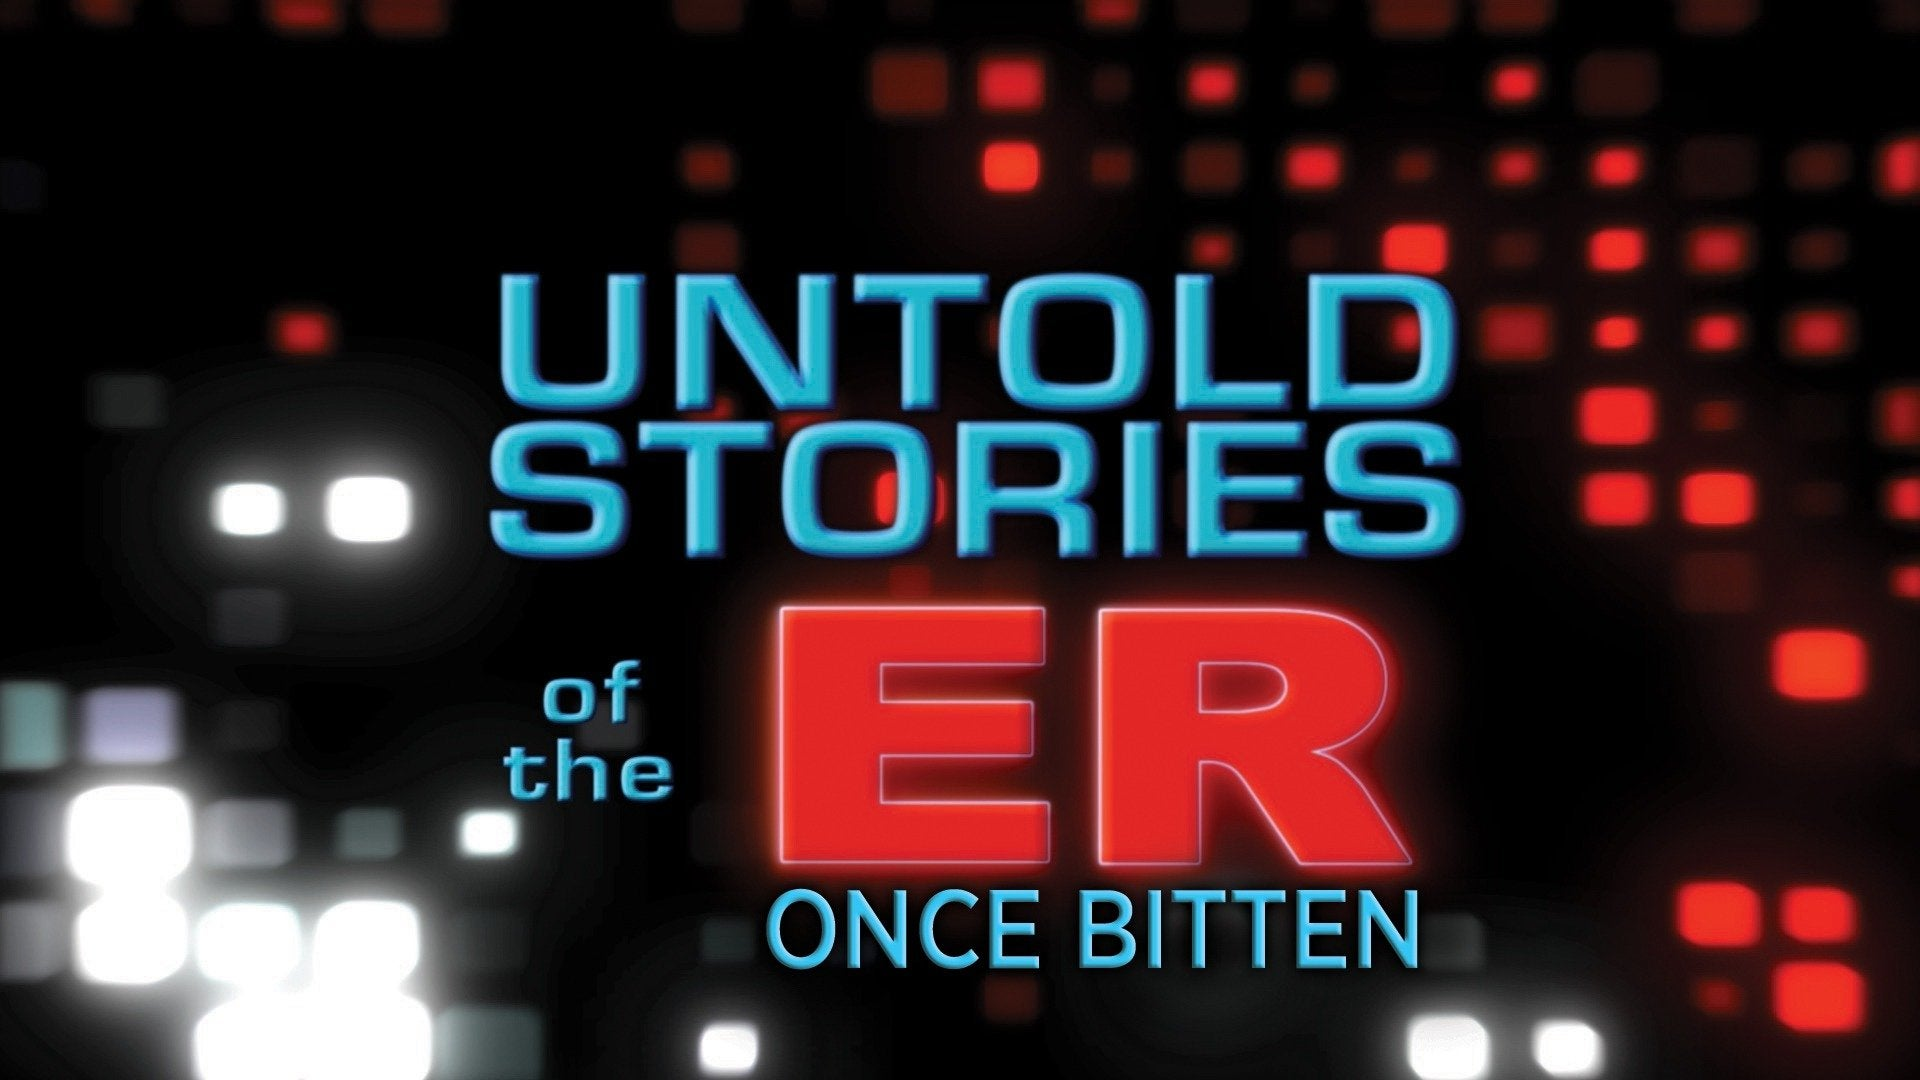 Untold Stories of the ER: Once Bitten